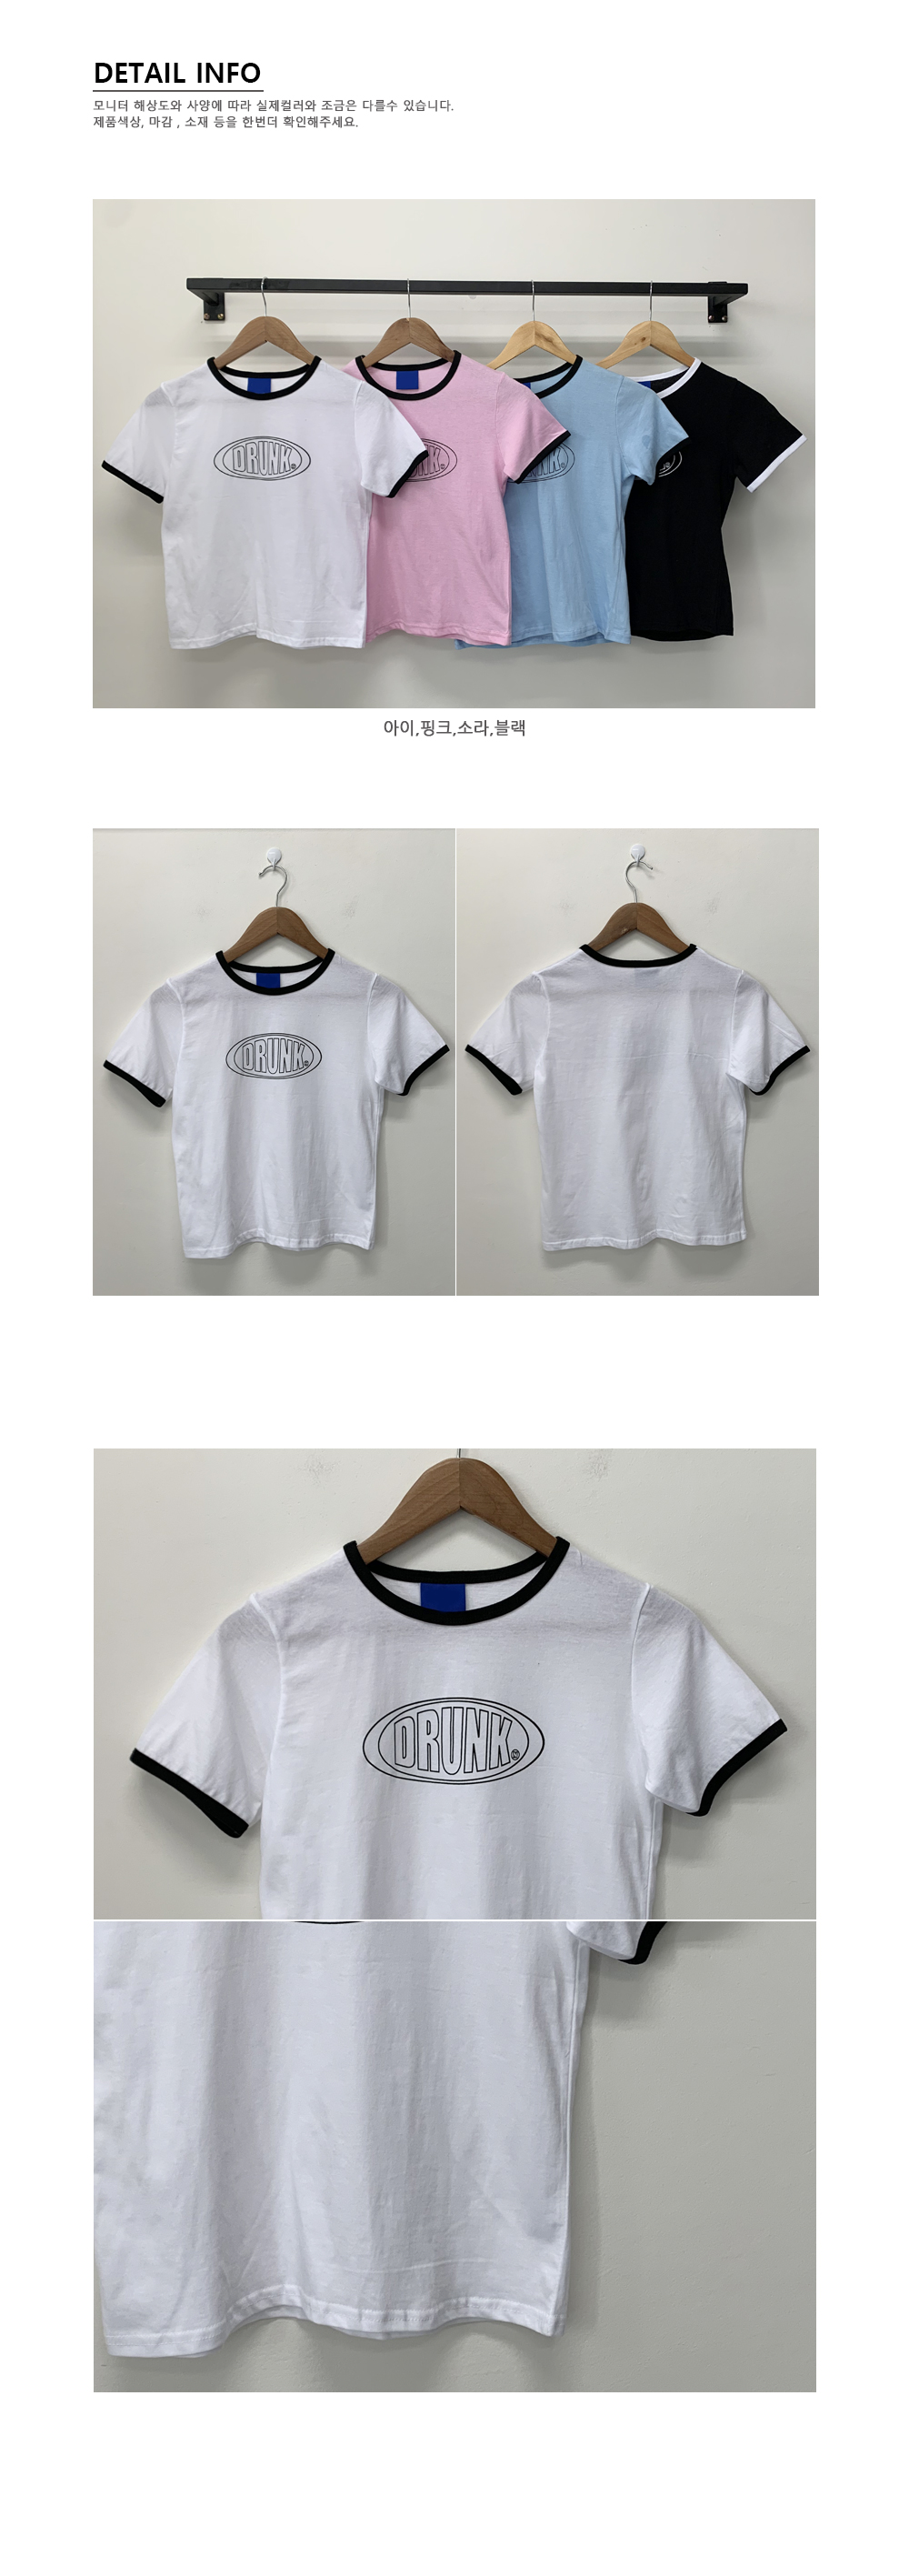 Drunk cropped short cropped short sleeve tee